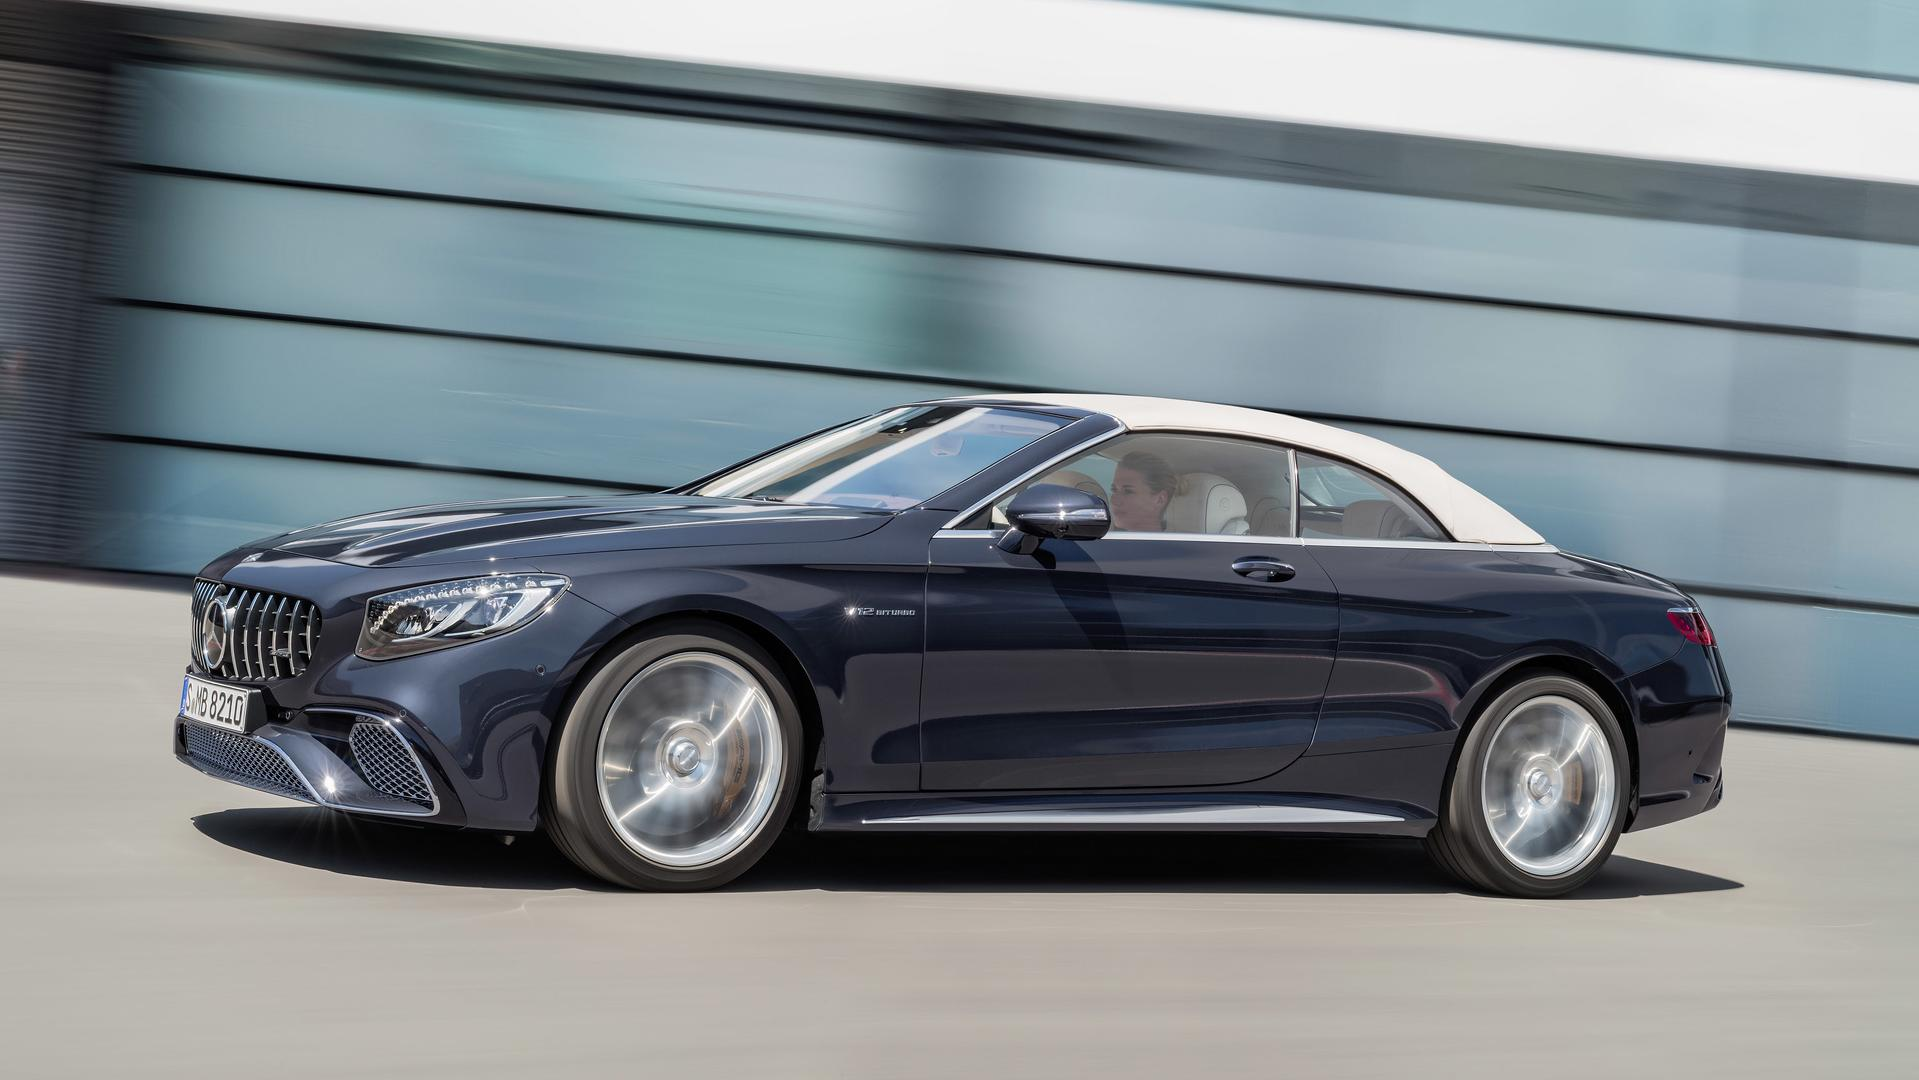 https://icdn-9.motor1.com/images/mgl/ZPmy3/s1/2018-mercedes-amg-s65-cabriolet.jpg